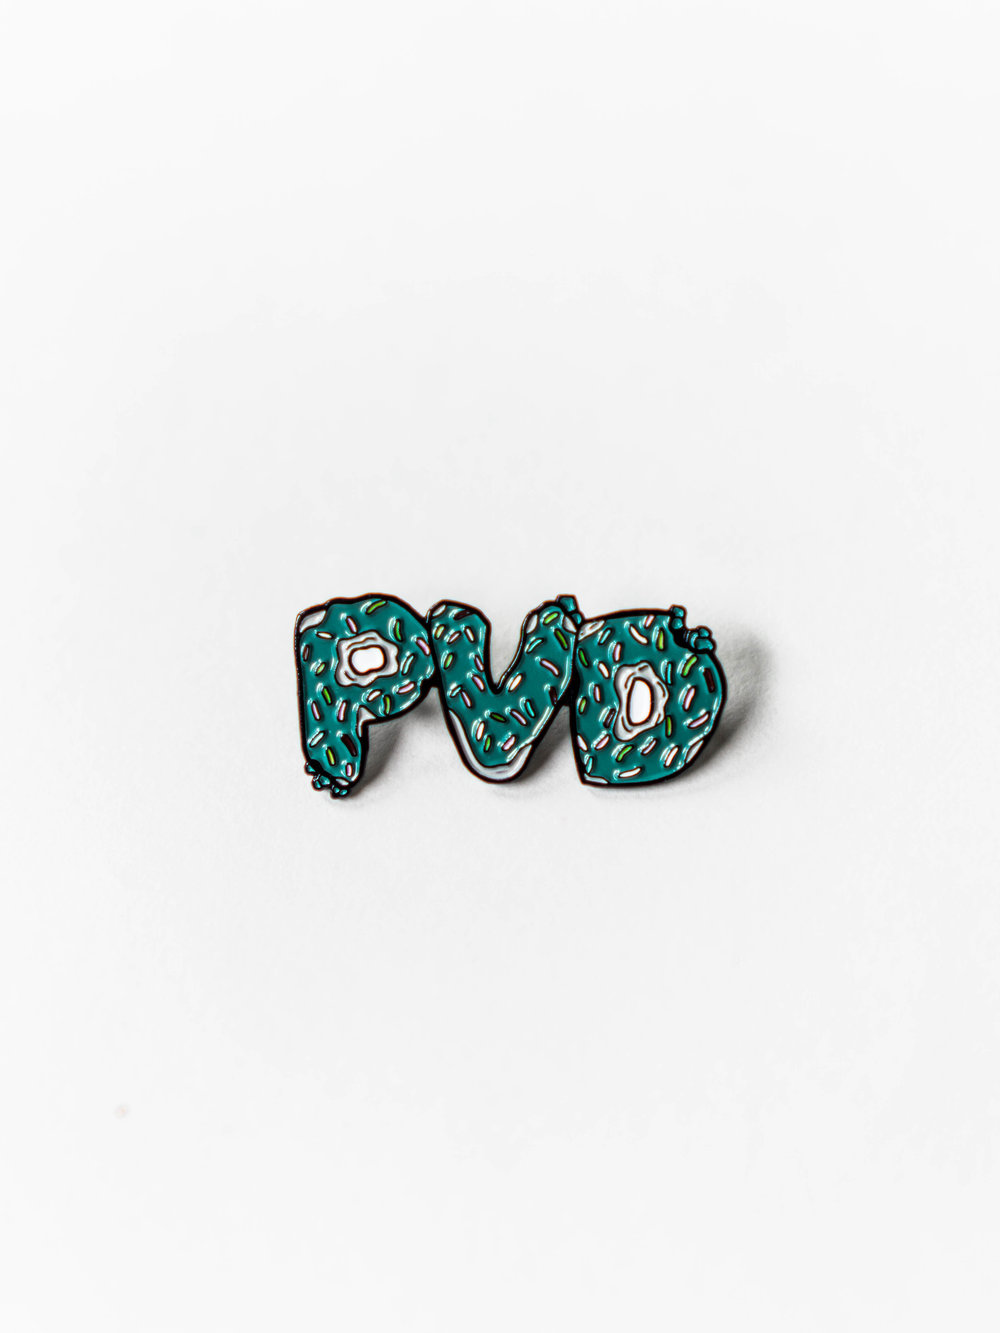 PVD x Dilo Draws Enamel Pins - $14